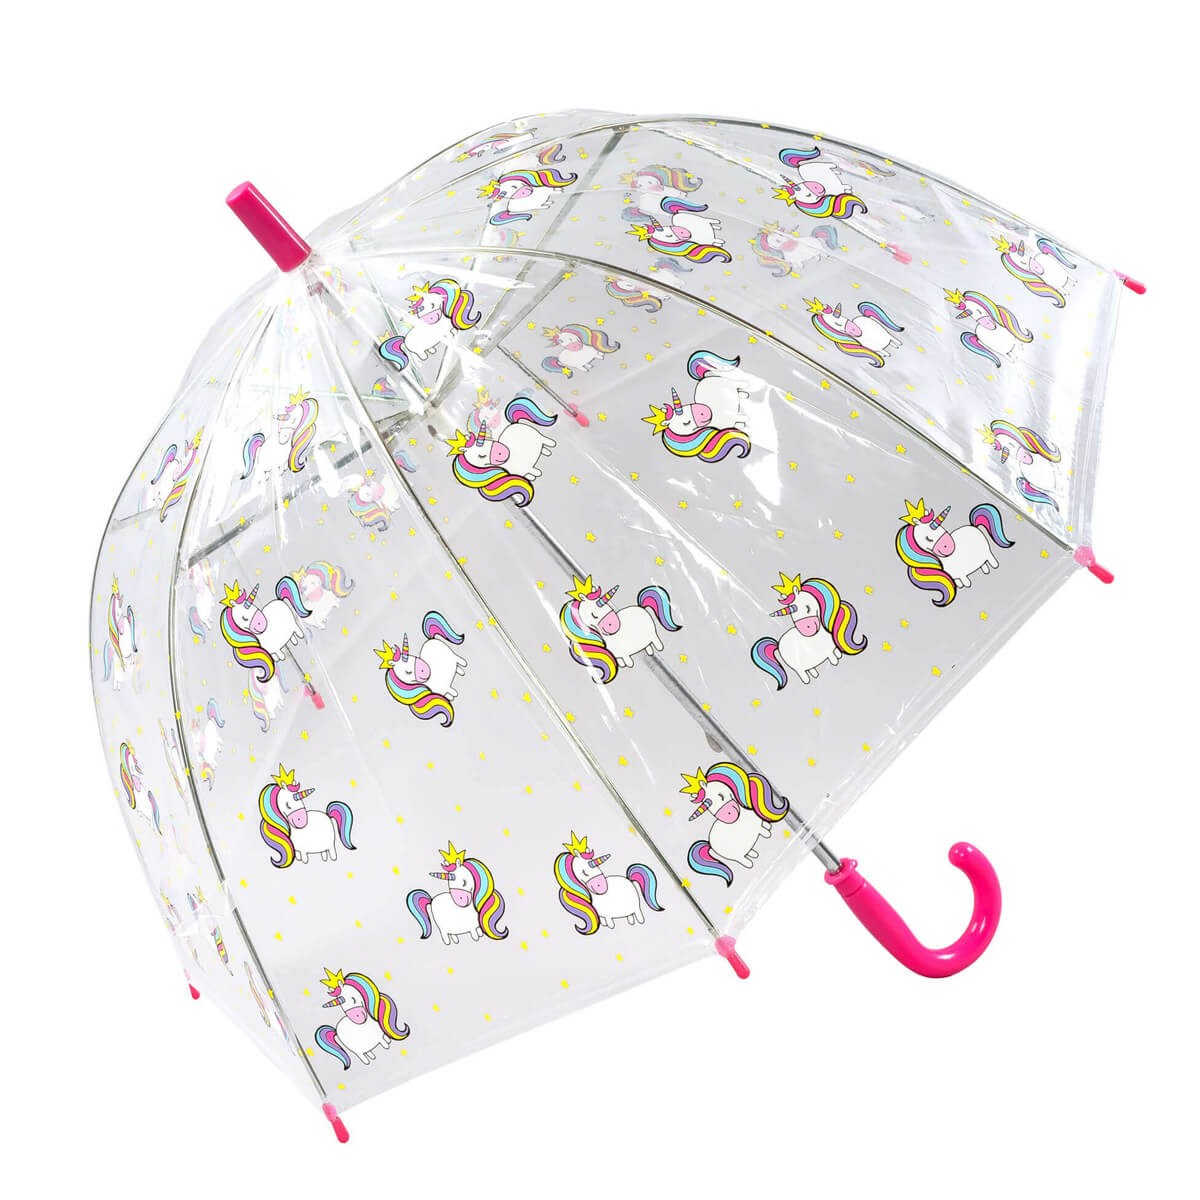 Kids Unicorn Umbrella (17025)